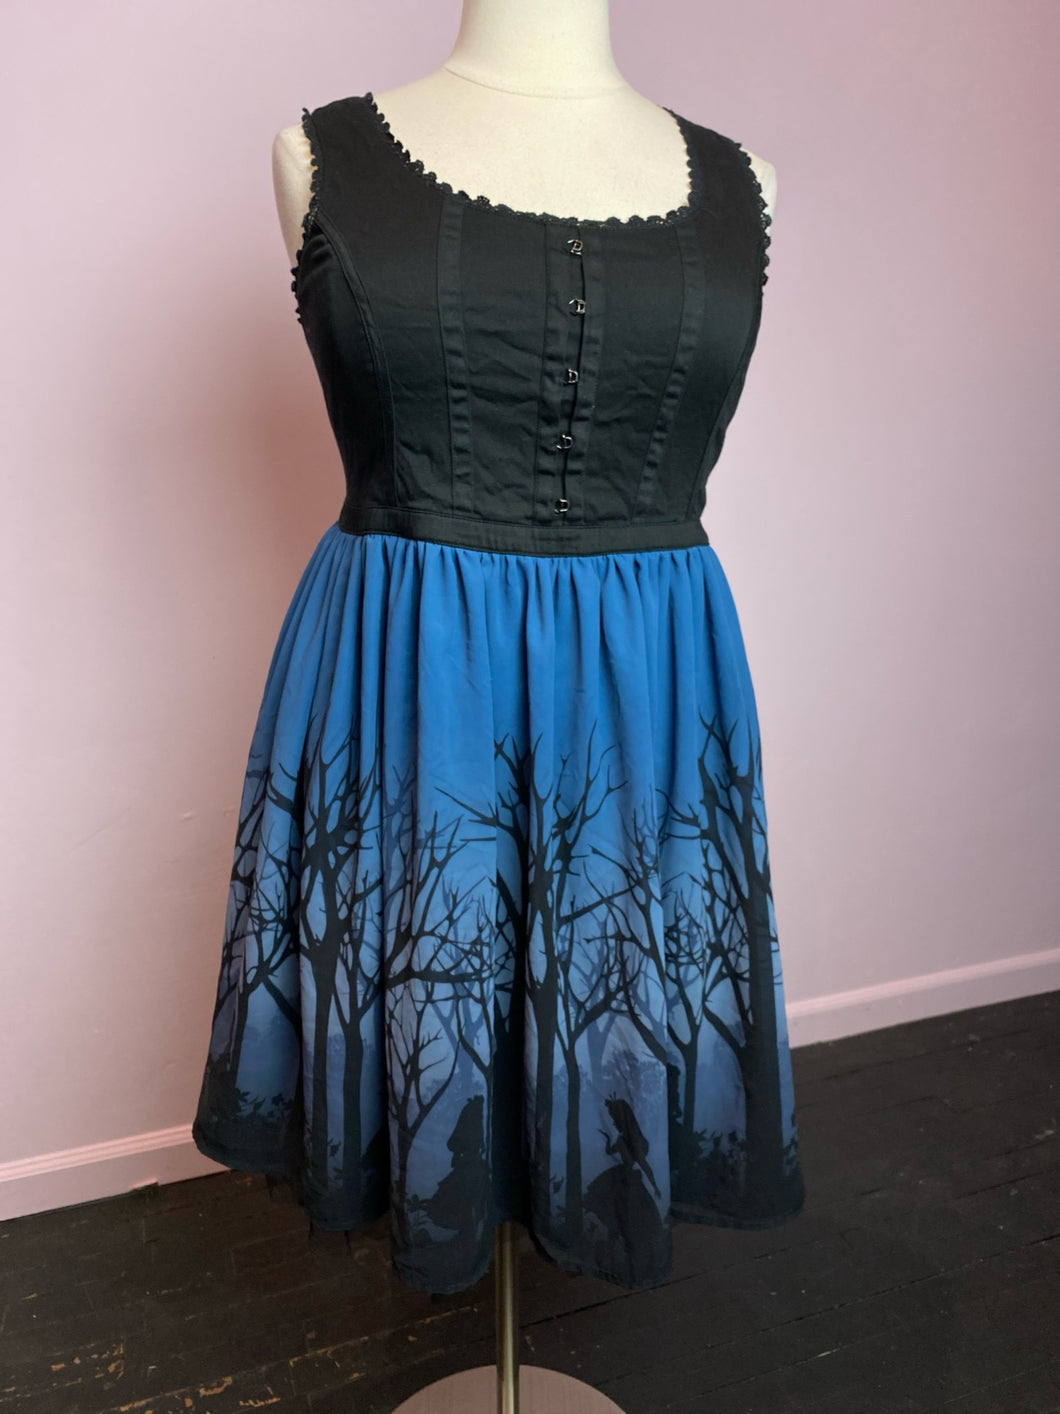 Blue and Black Alice in Wonderland Corset Dress by Disney, Size 16